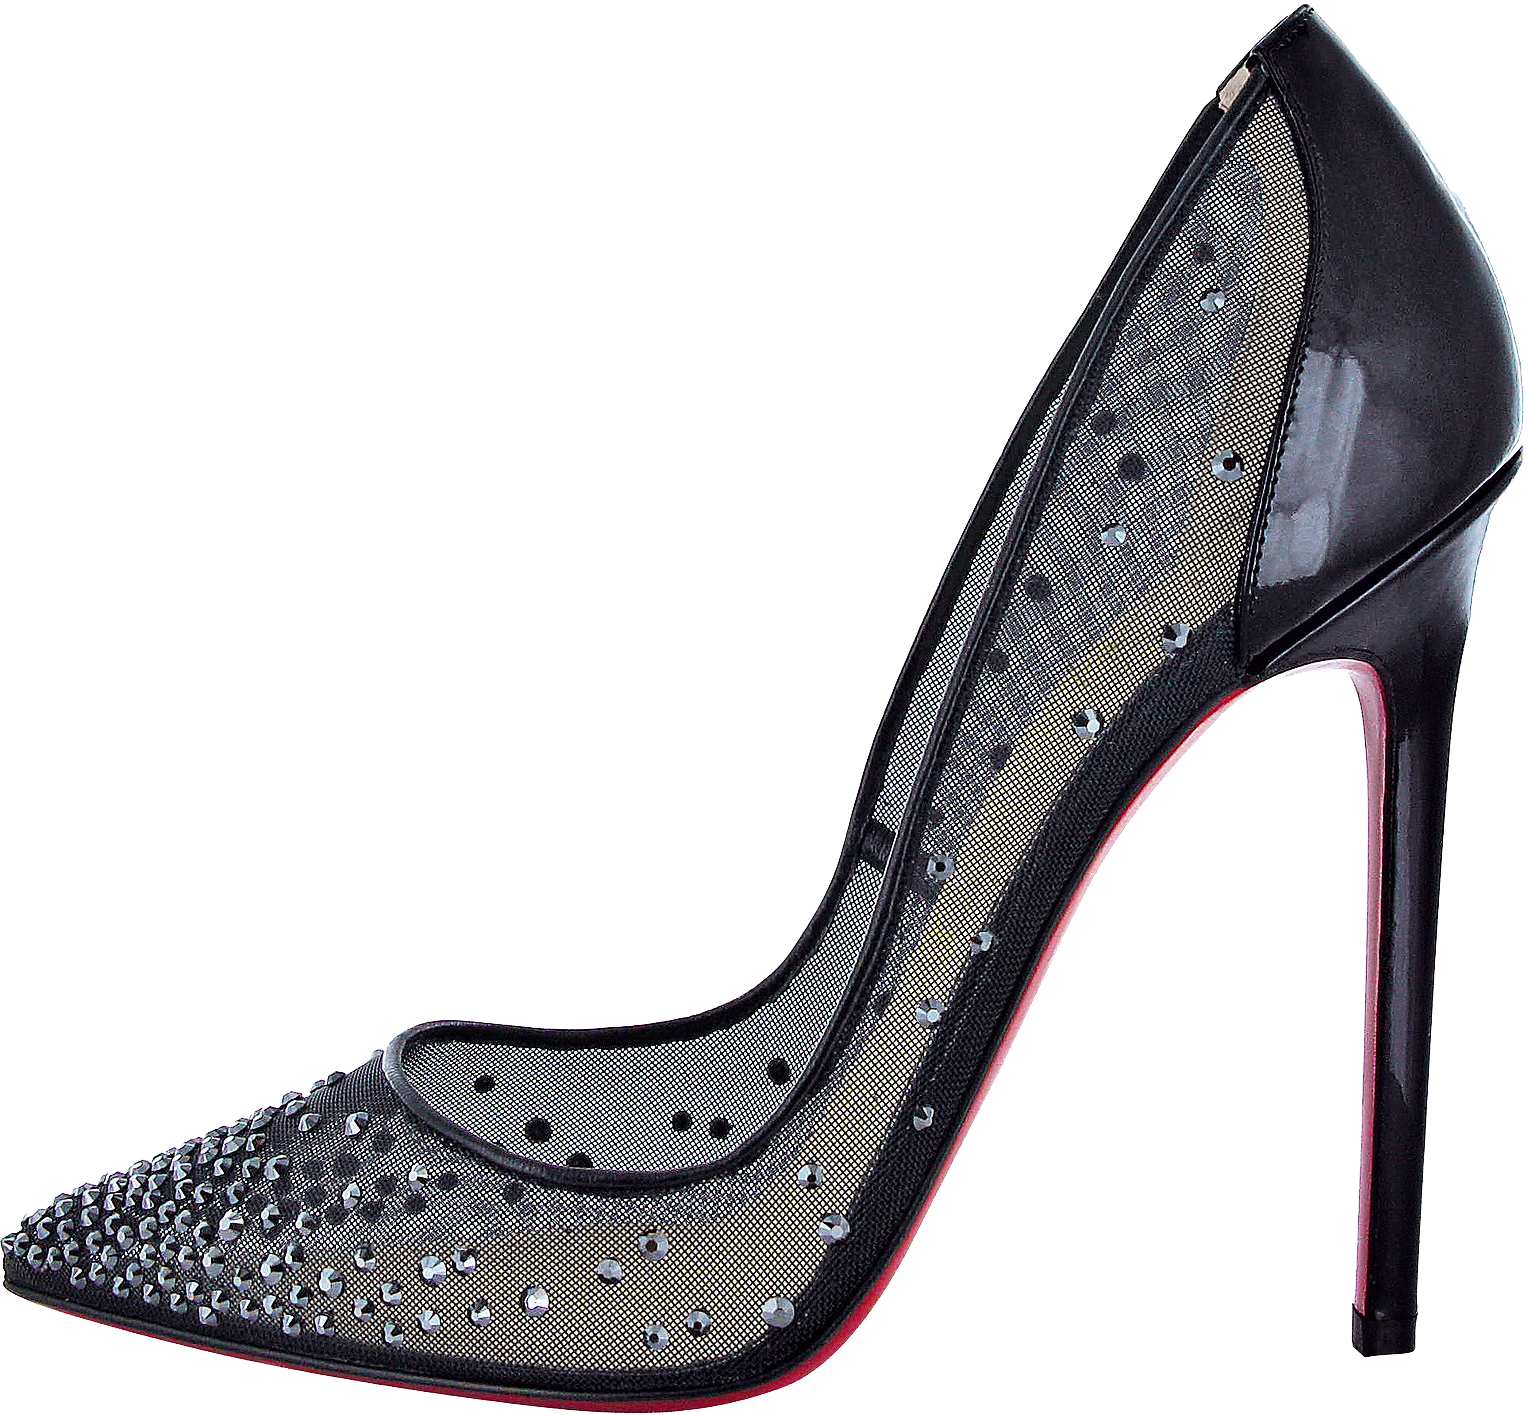 Louboutin Women S High Quality Png Image Christian Louboutin Heels Louboutin Heels